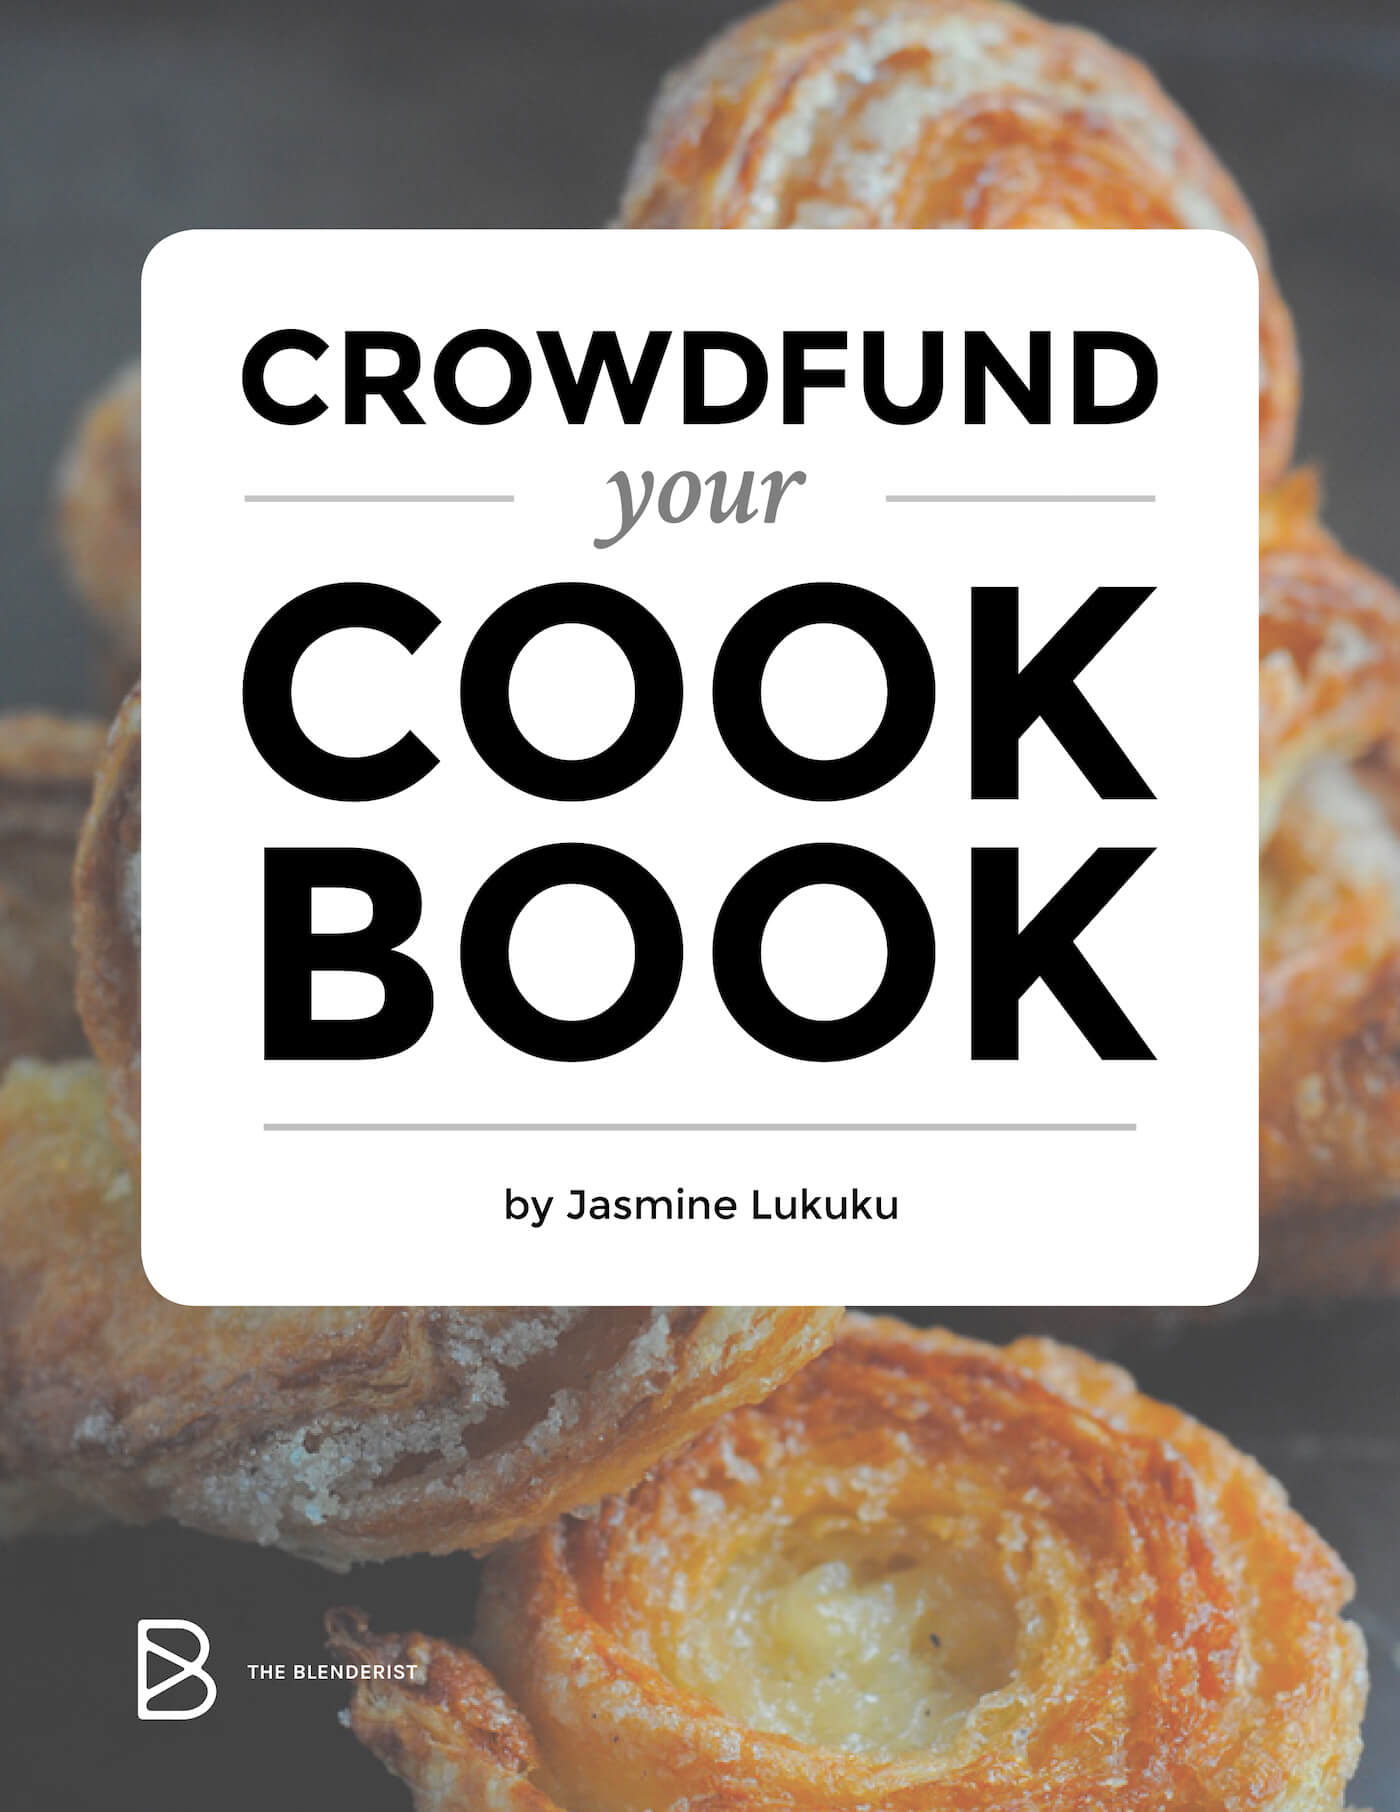 Crowdfunding-a-cookbook-self-publishing